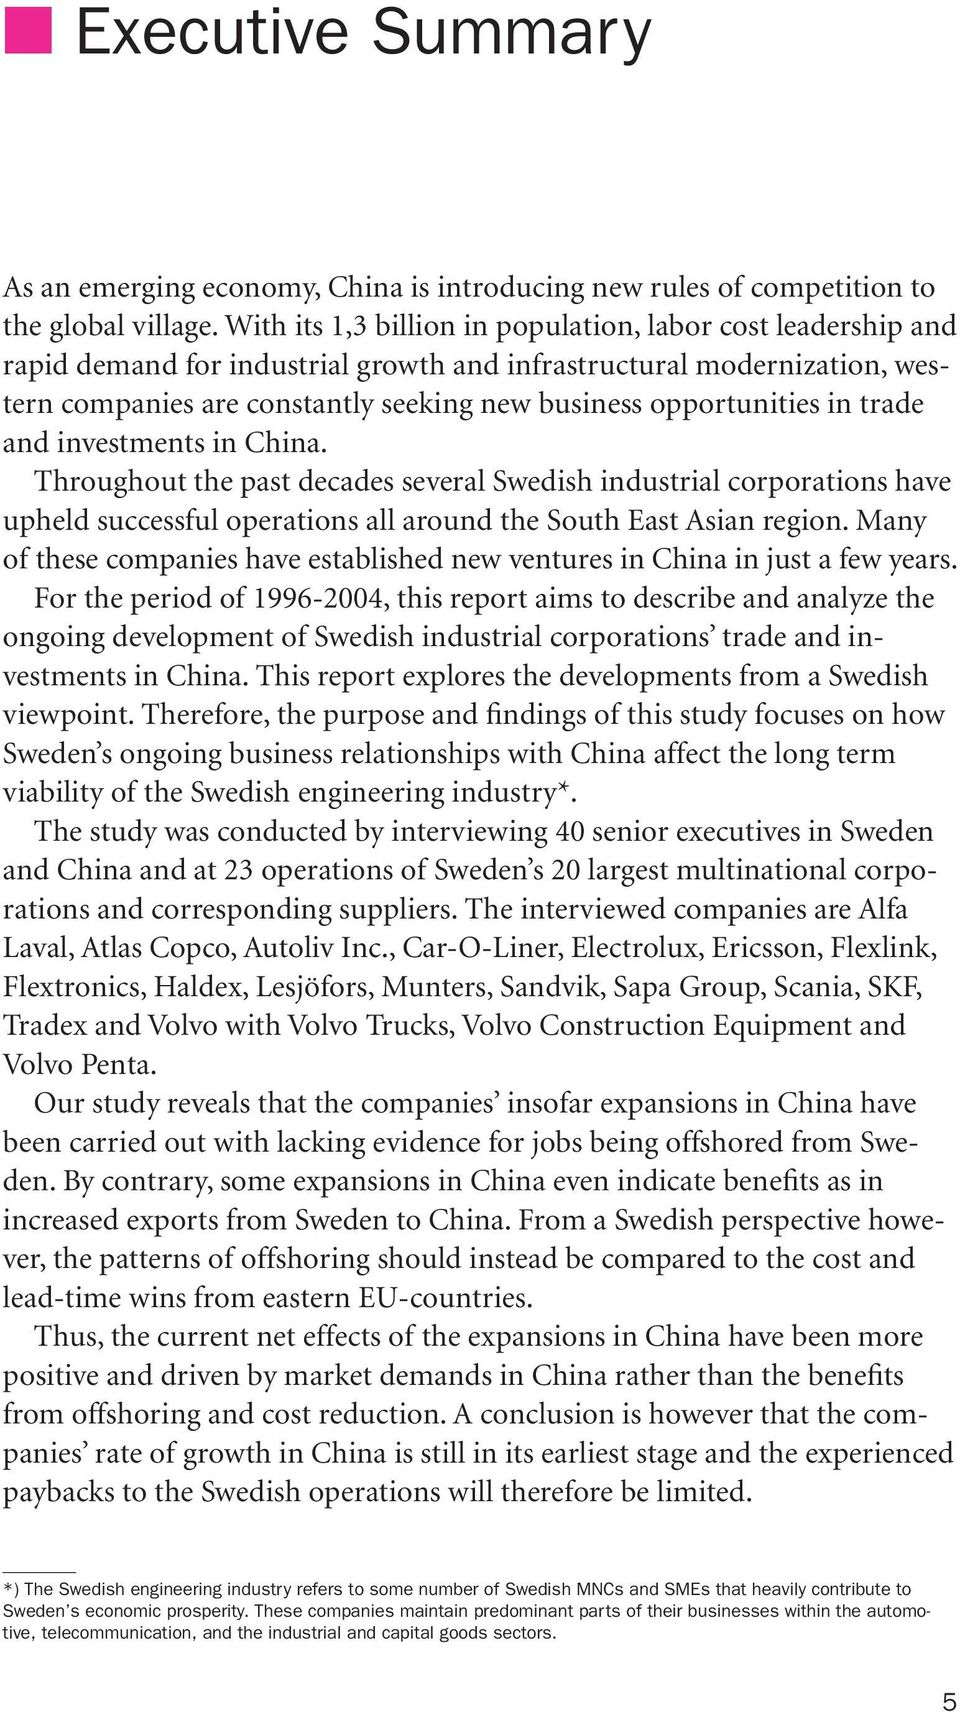 in trade and investments in China. Throughout the past decades several Swedish industrial corporations have upheld successful operations all around the South East Asian region.